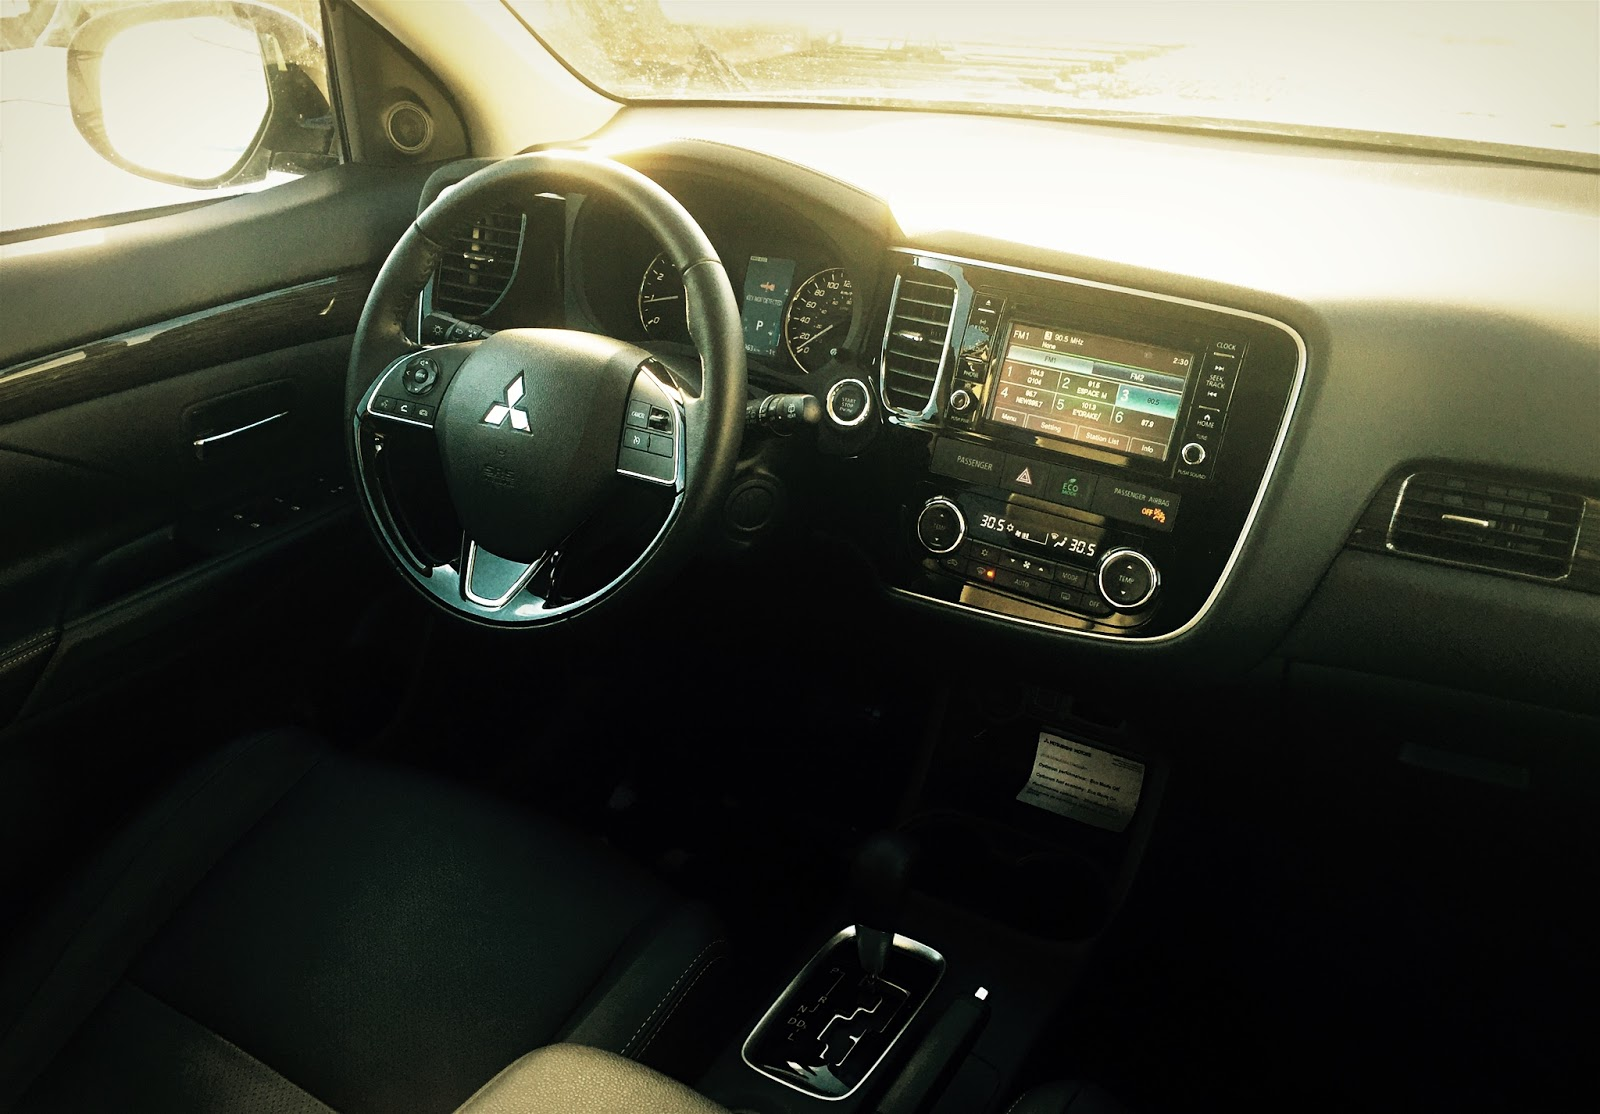 2016 mitsubishi outlander es interior 3 pitching diving the outlanders ride and handling balance is acceptable if we can say so kindly